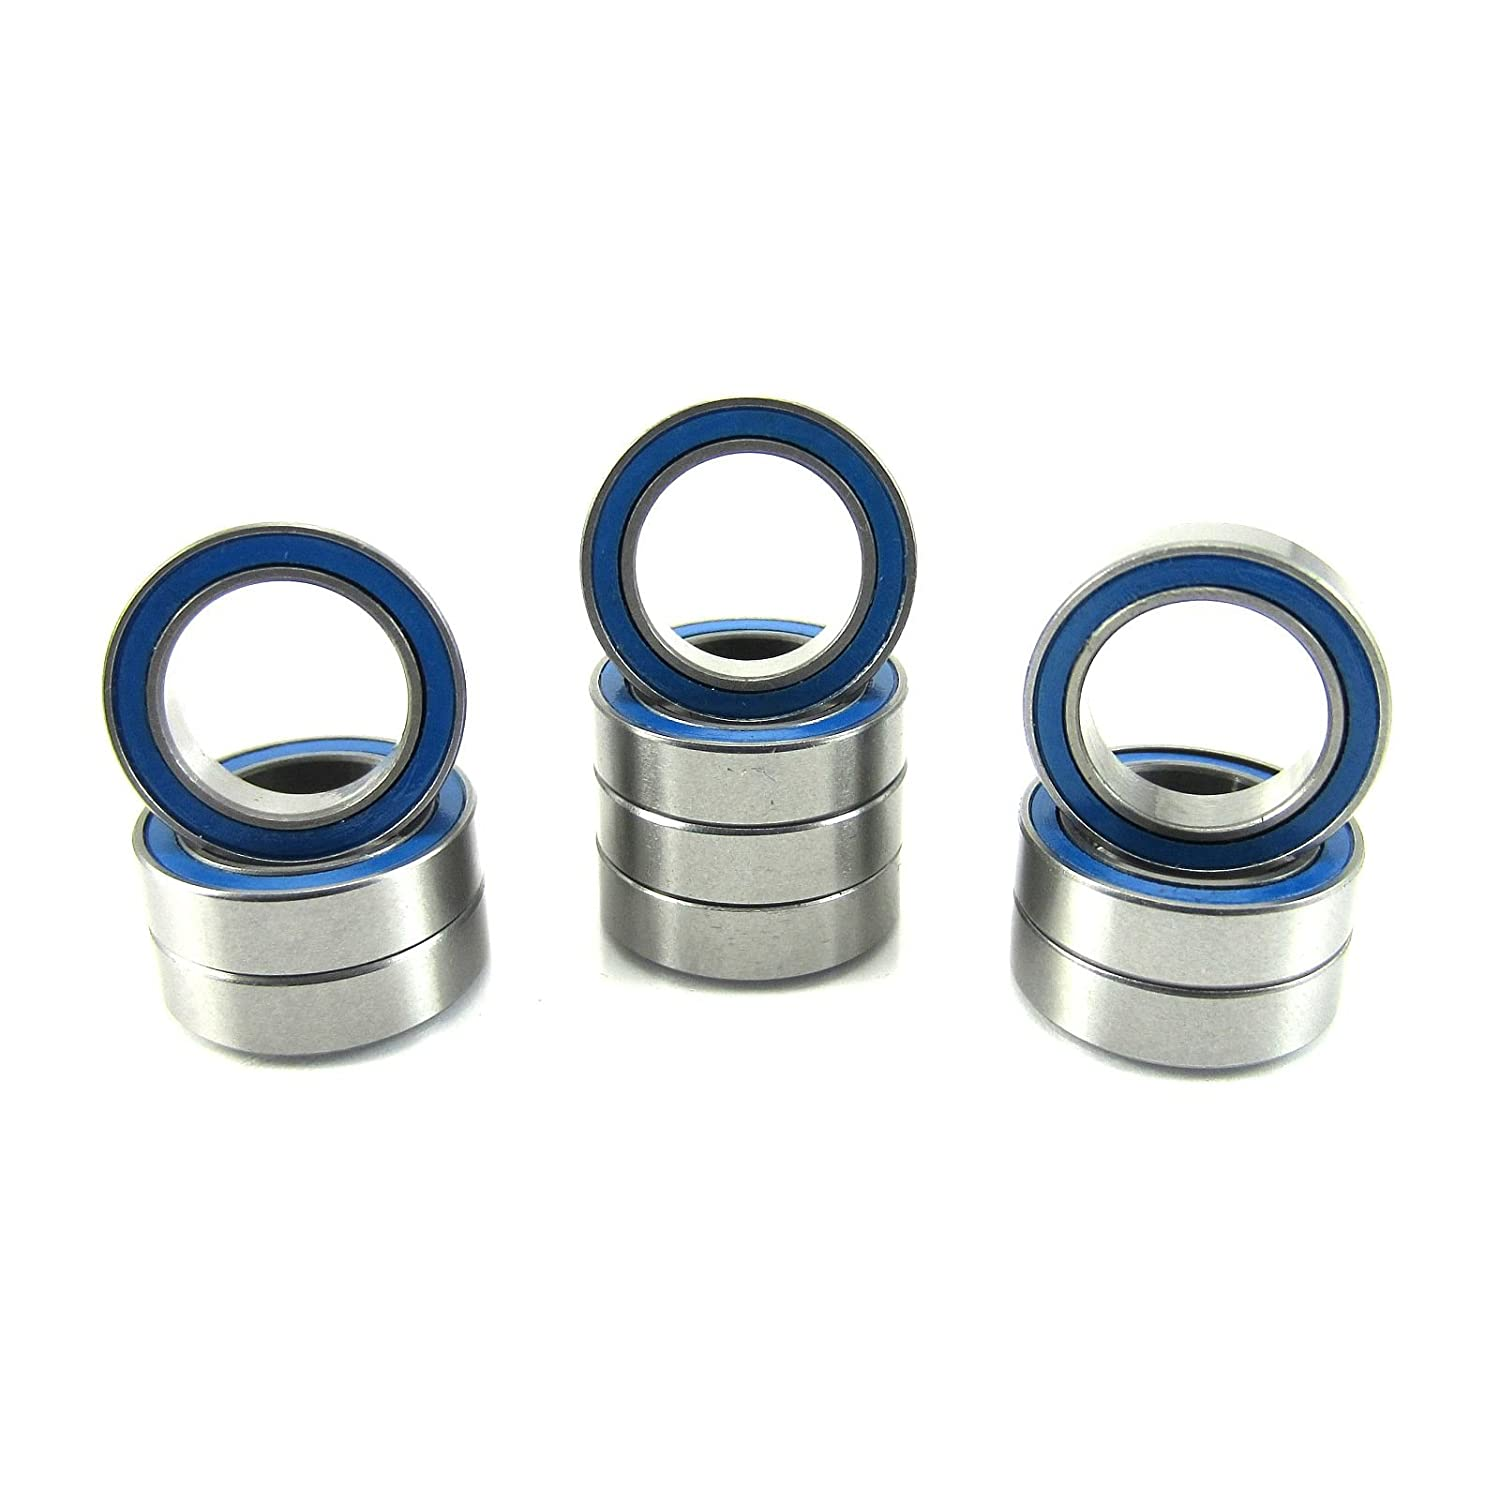 10x15x4mm Precision Ball Bearings ABEC 3 Rubber Seals (10) 6700-2RS-BU